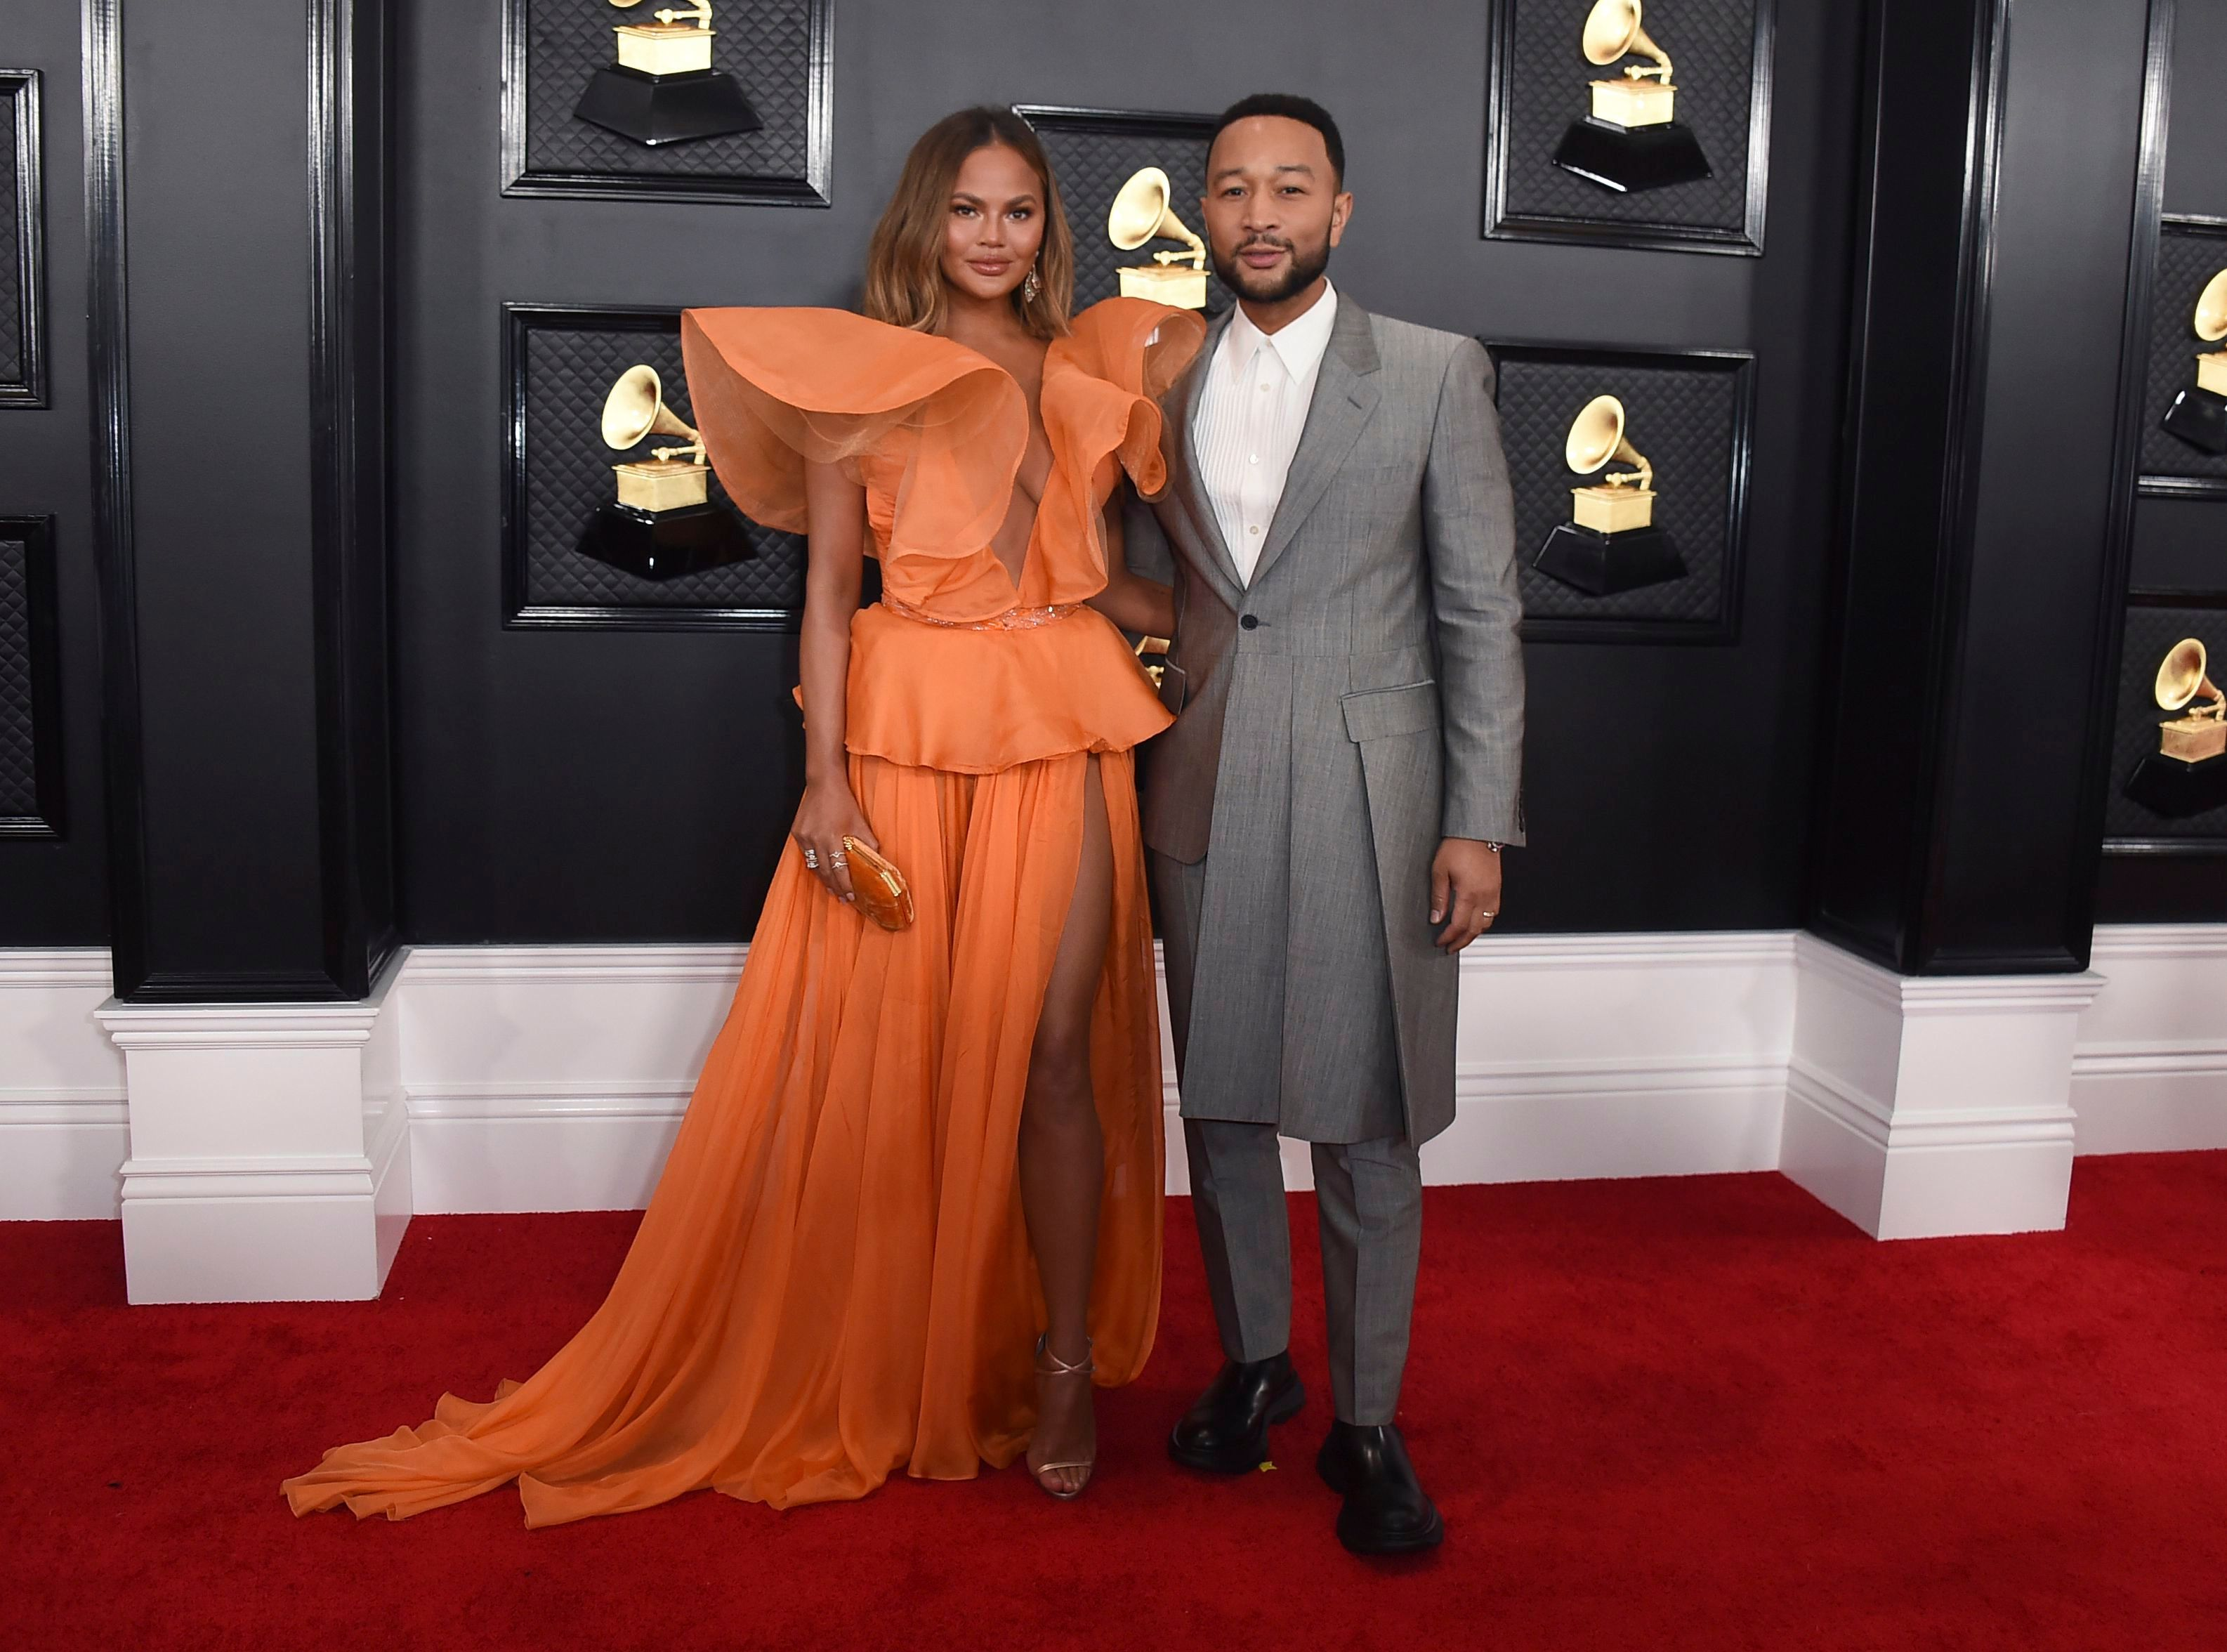 Chrissy Teigen and John Legend Have the Best Date Night Out at the 2020 Grammys